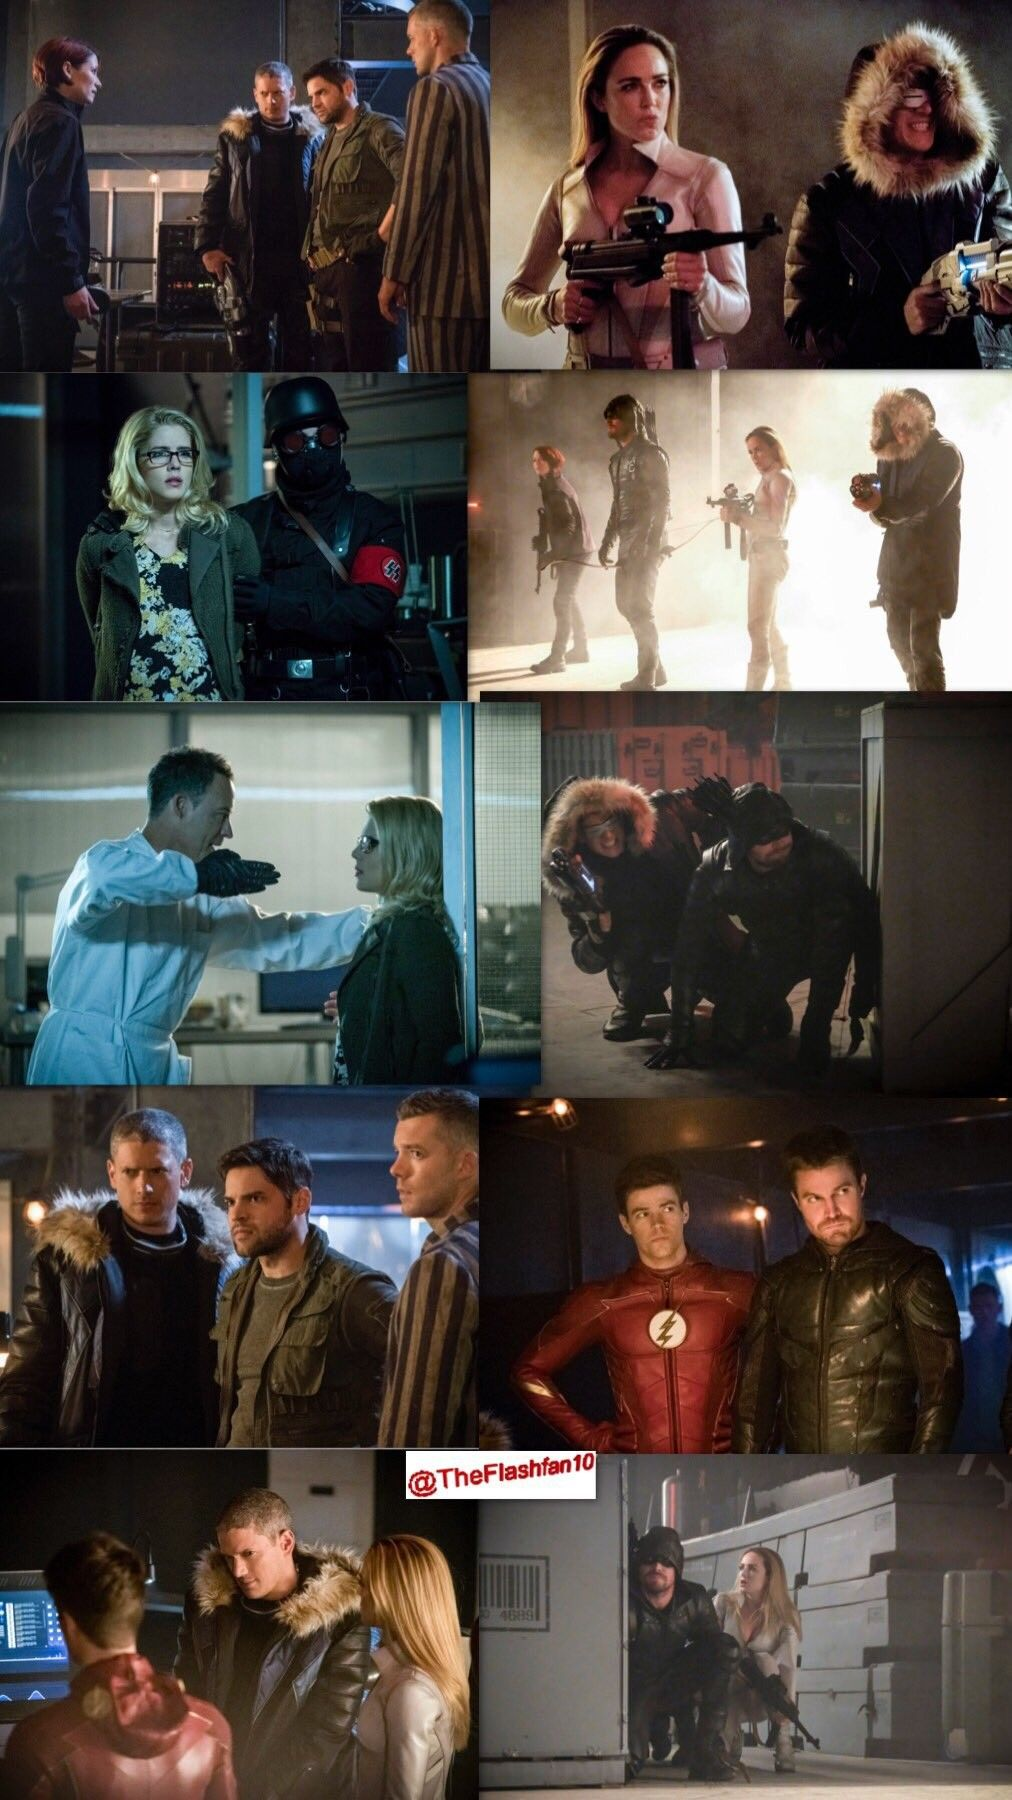 Pin by Daleen B. on The Flash | The flash season, The